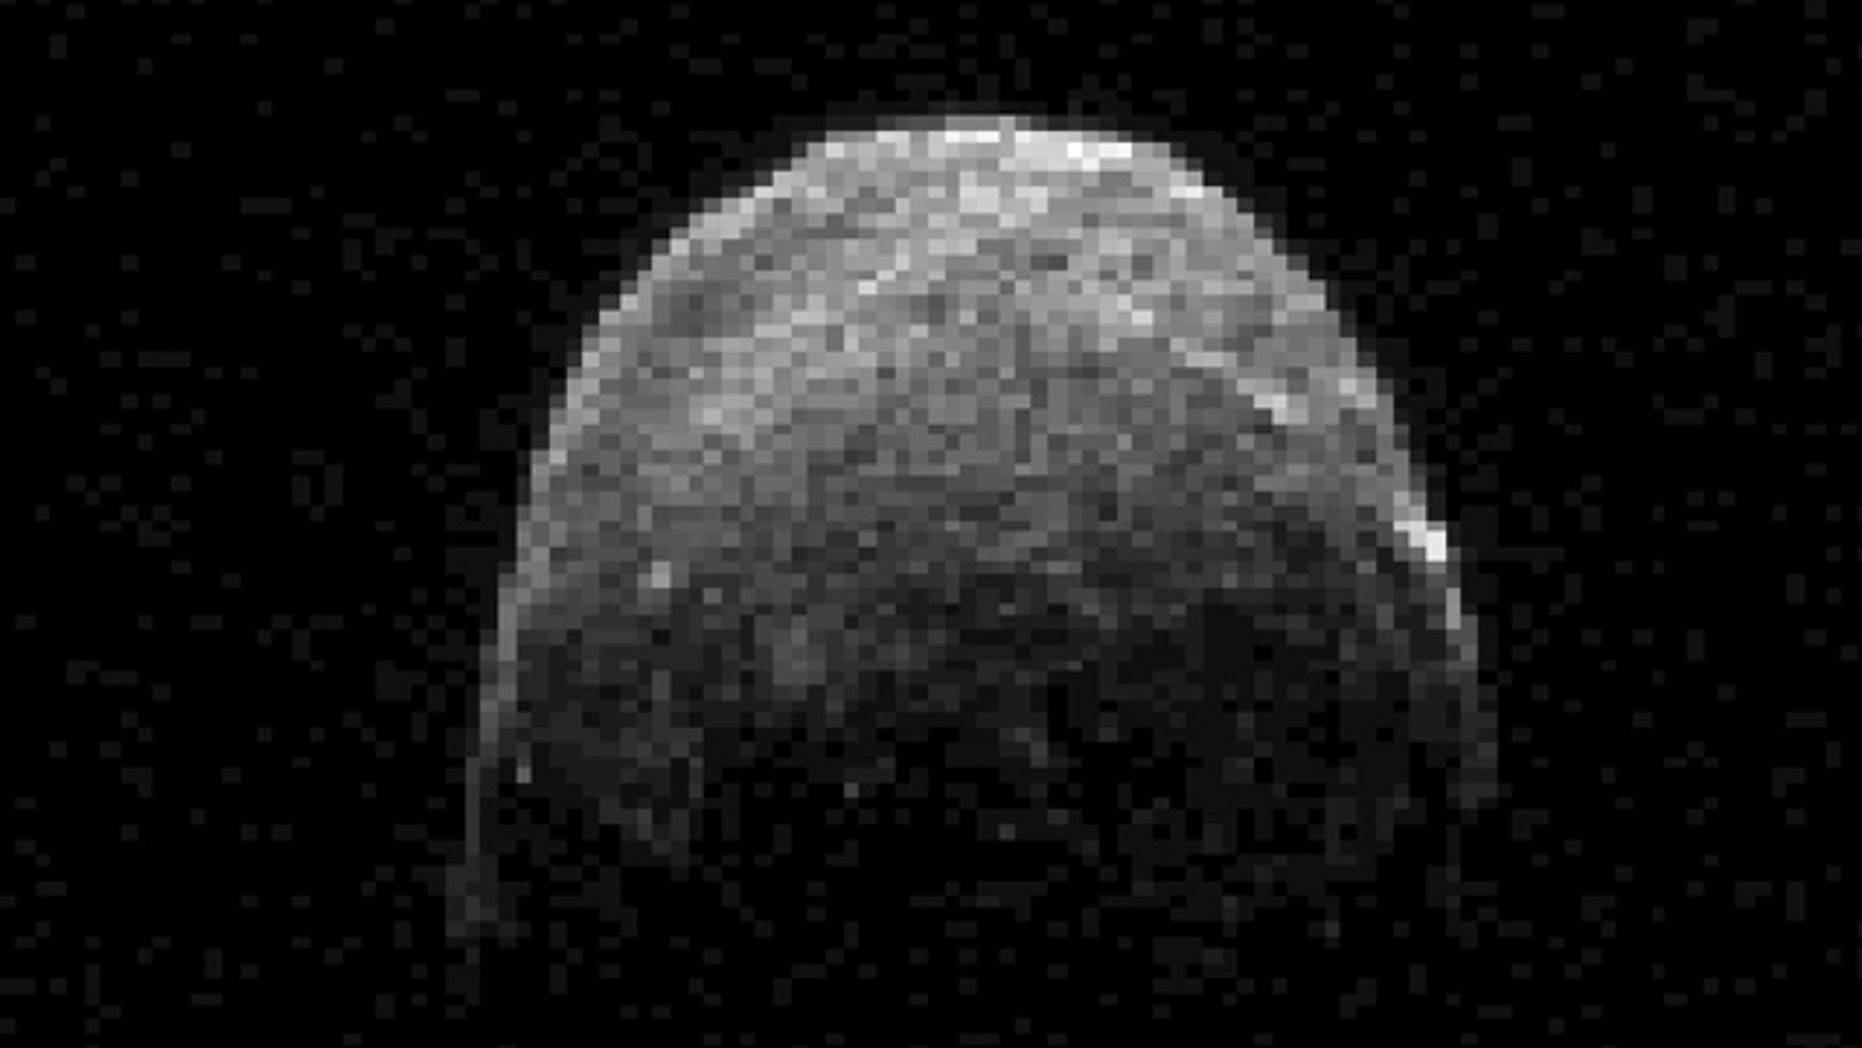 Nov. 7, 2011: This radar image of asteroid 2005 YU55 shows the space rock 3.6 lunar distances, which is about 860,000 miles, or 1.38 million kilometers, from Earth.